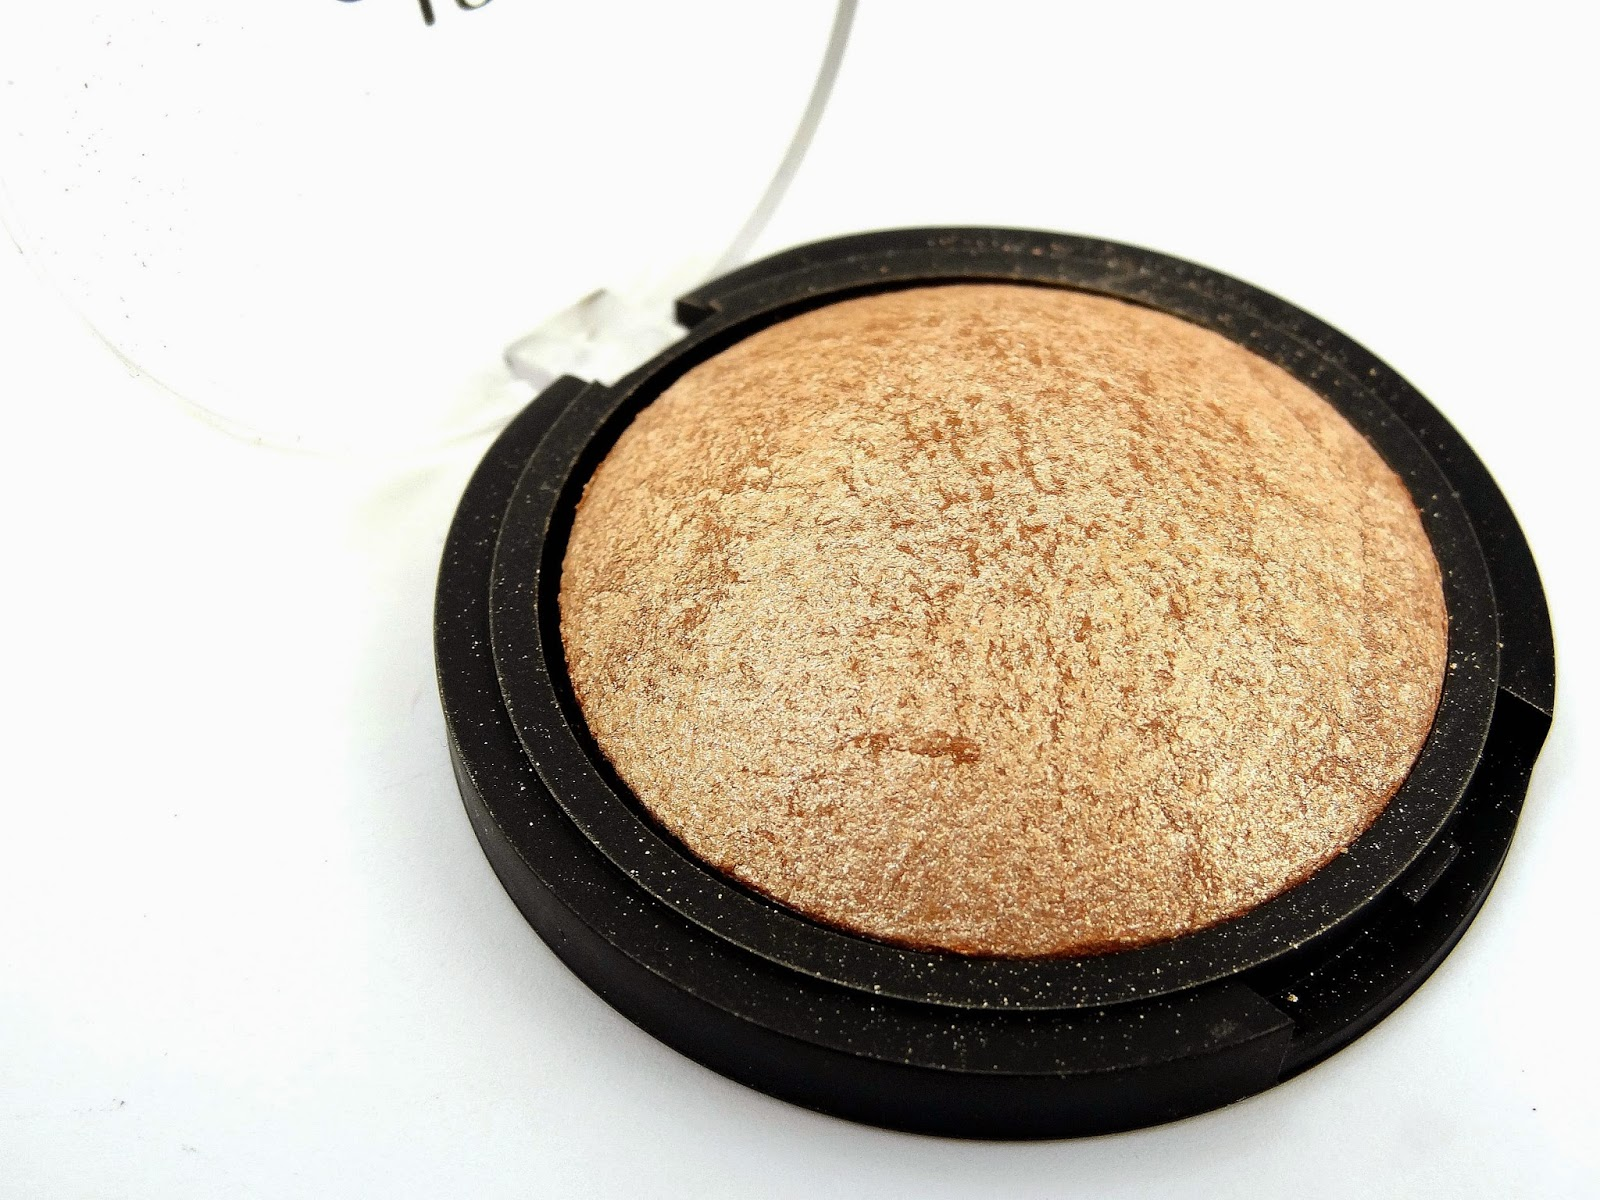 e.l.f. Studio Baked Highlighter in Blush Gems